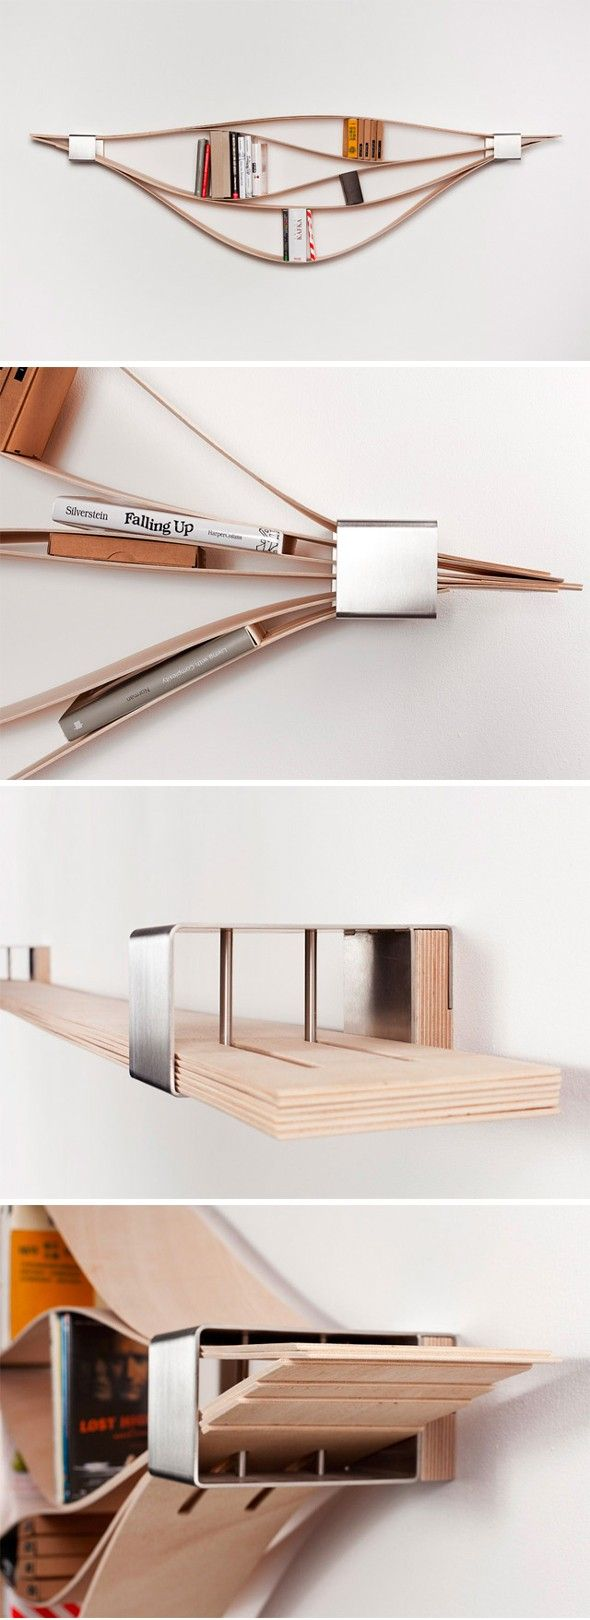 Chuck by Natascha Harra-Frischkorn. Chuck is an amazing concept of wall shelf, made by the German designer  Natascha Harra-Frischkorn . The set consists of six wooden planks 4mm thick, which can be adjusted to accommodate small collections of books or objects.